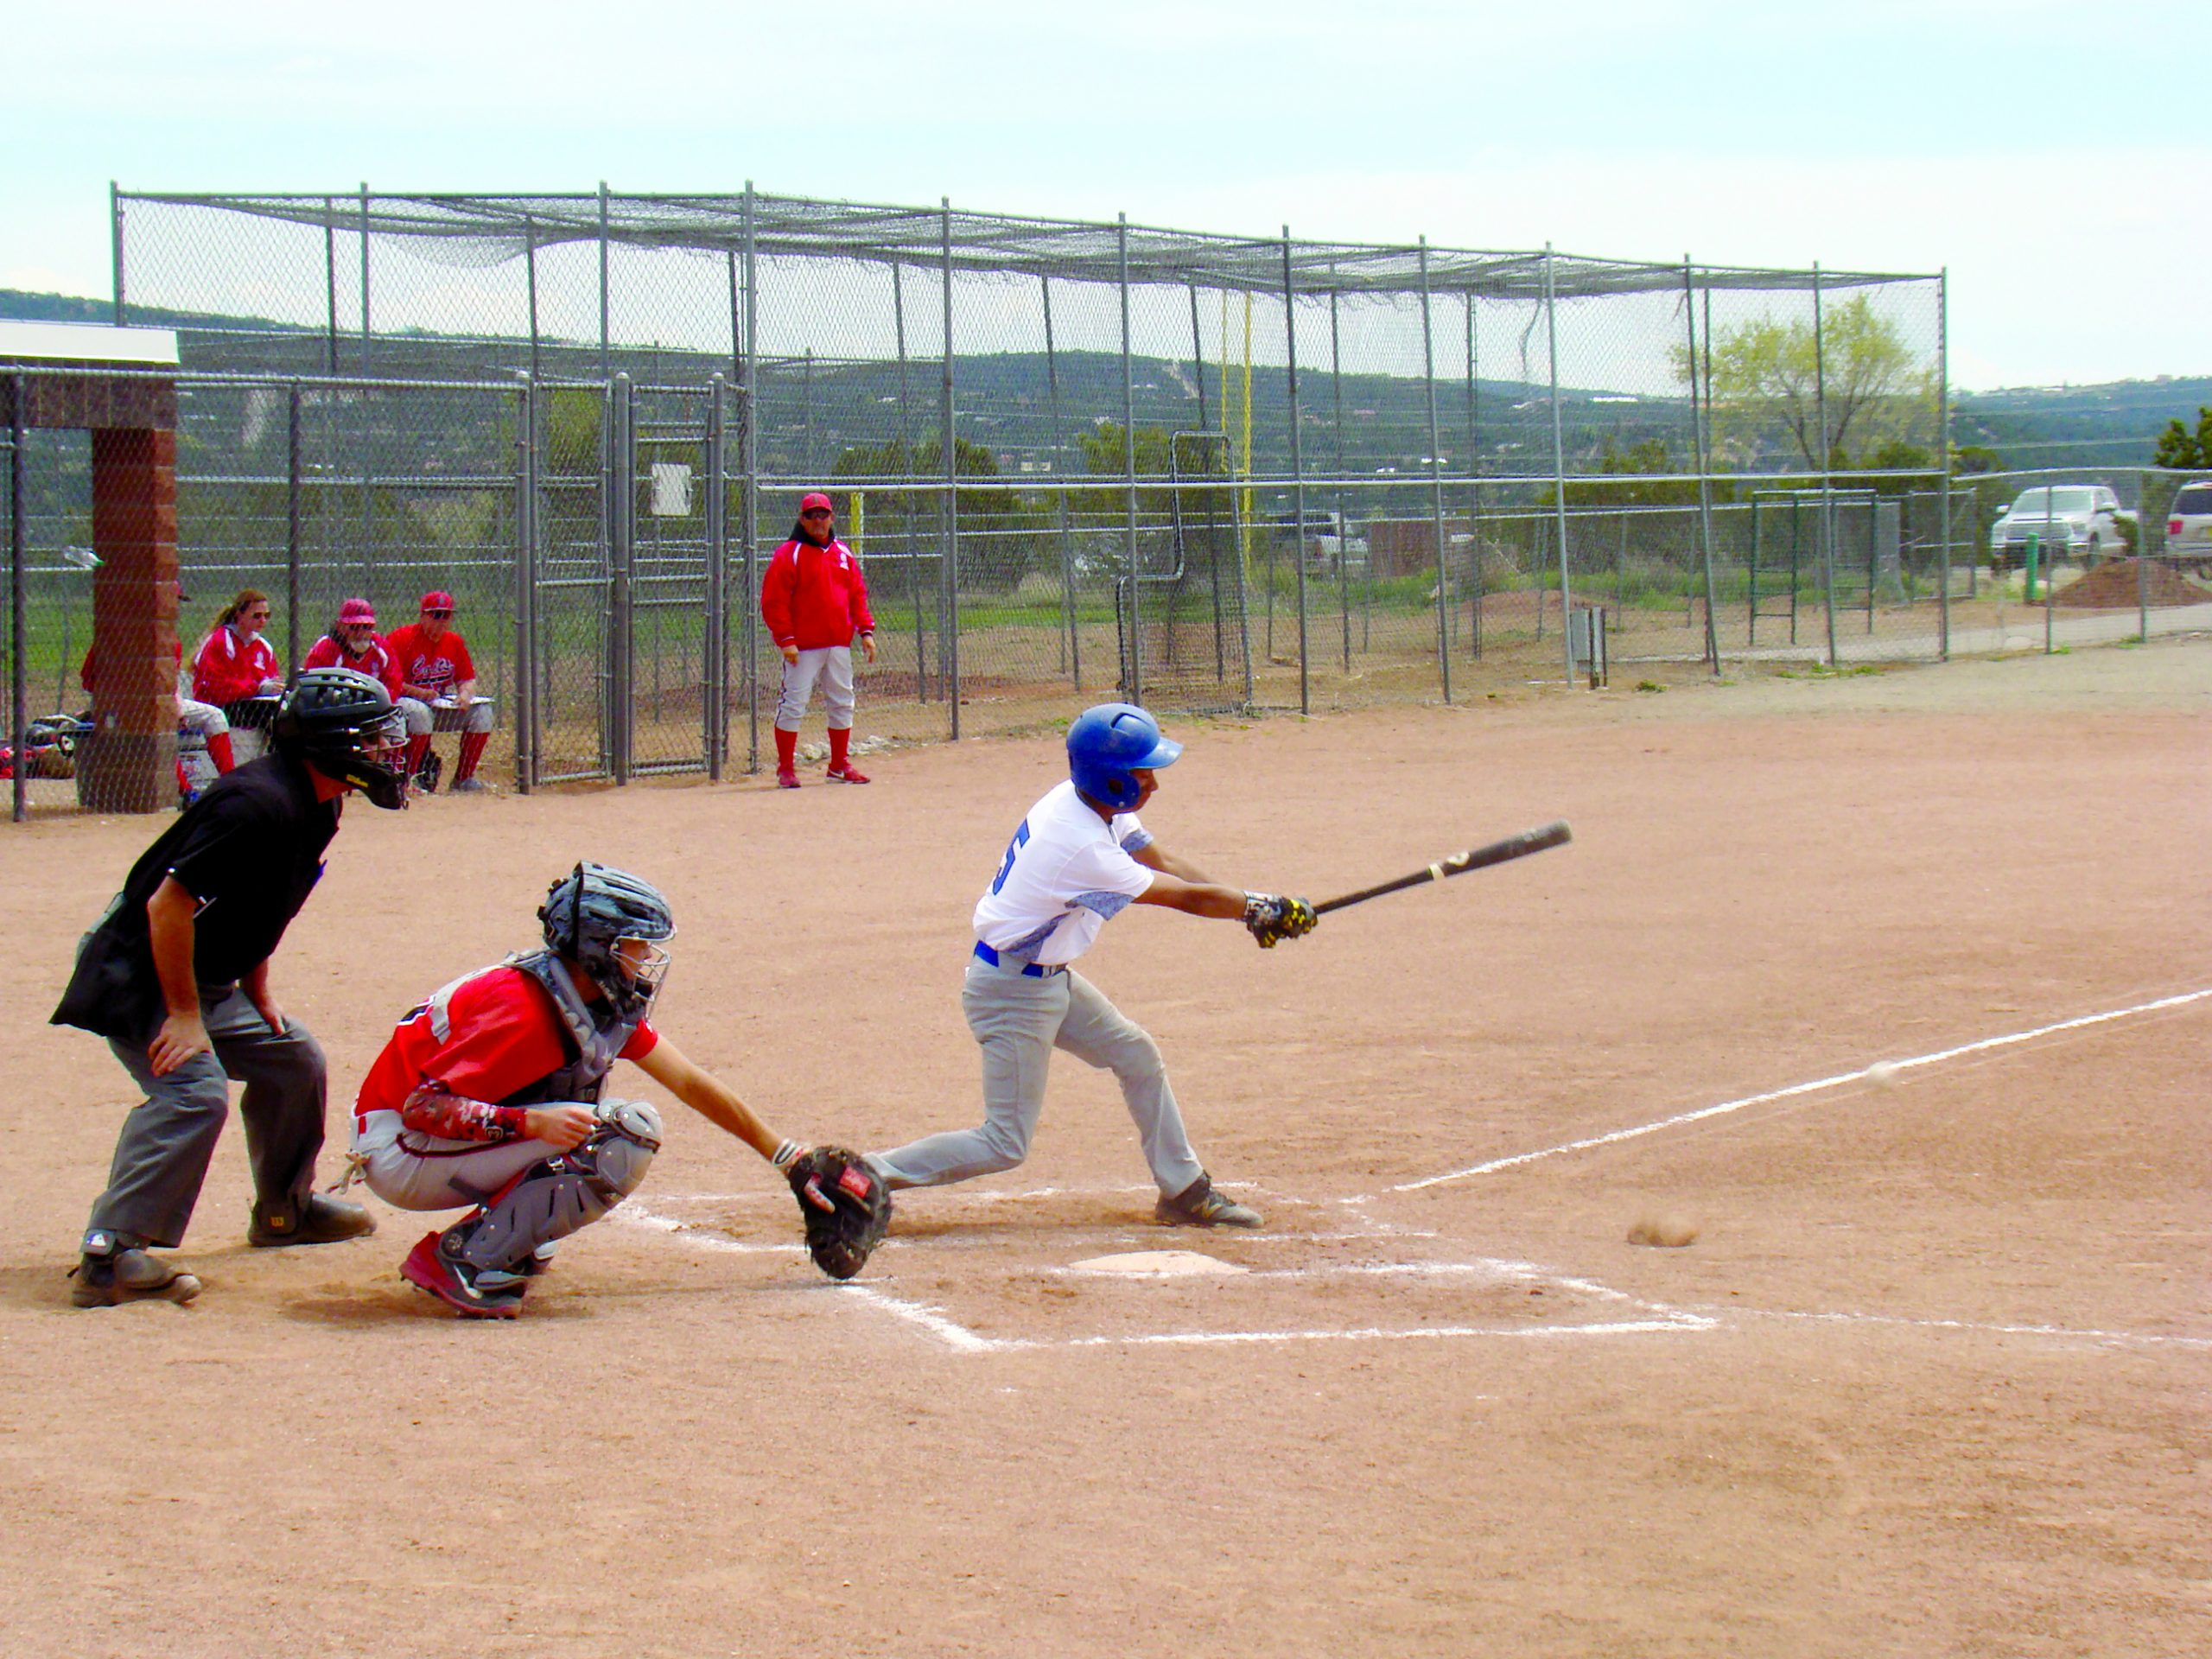 T'Wolves baseball looking to rebuild as frustrating season winds down